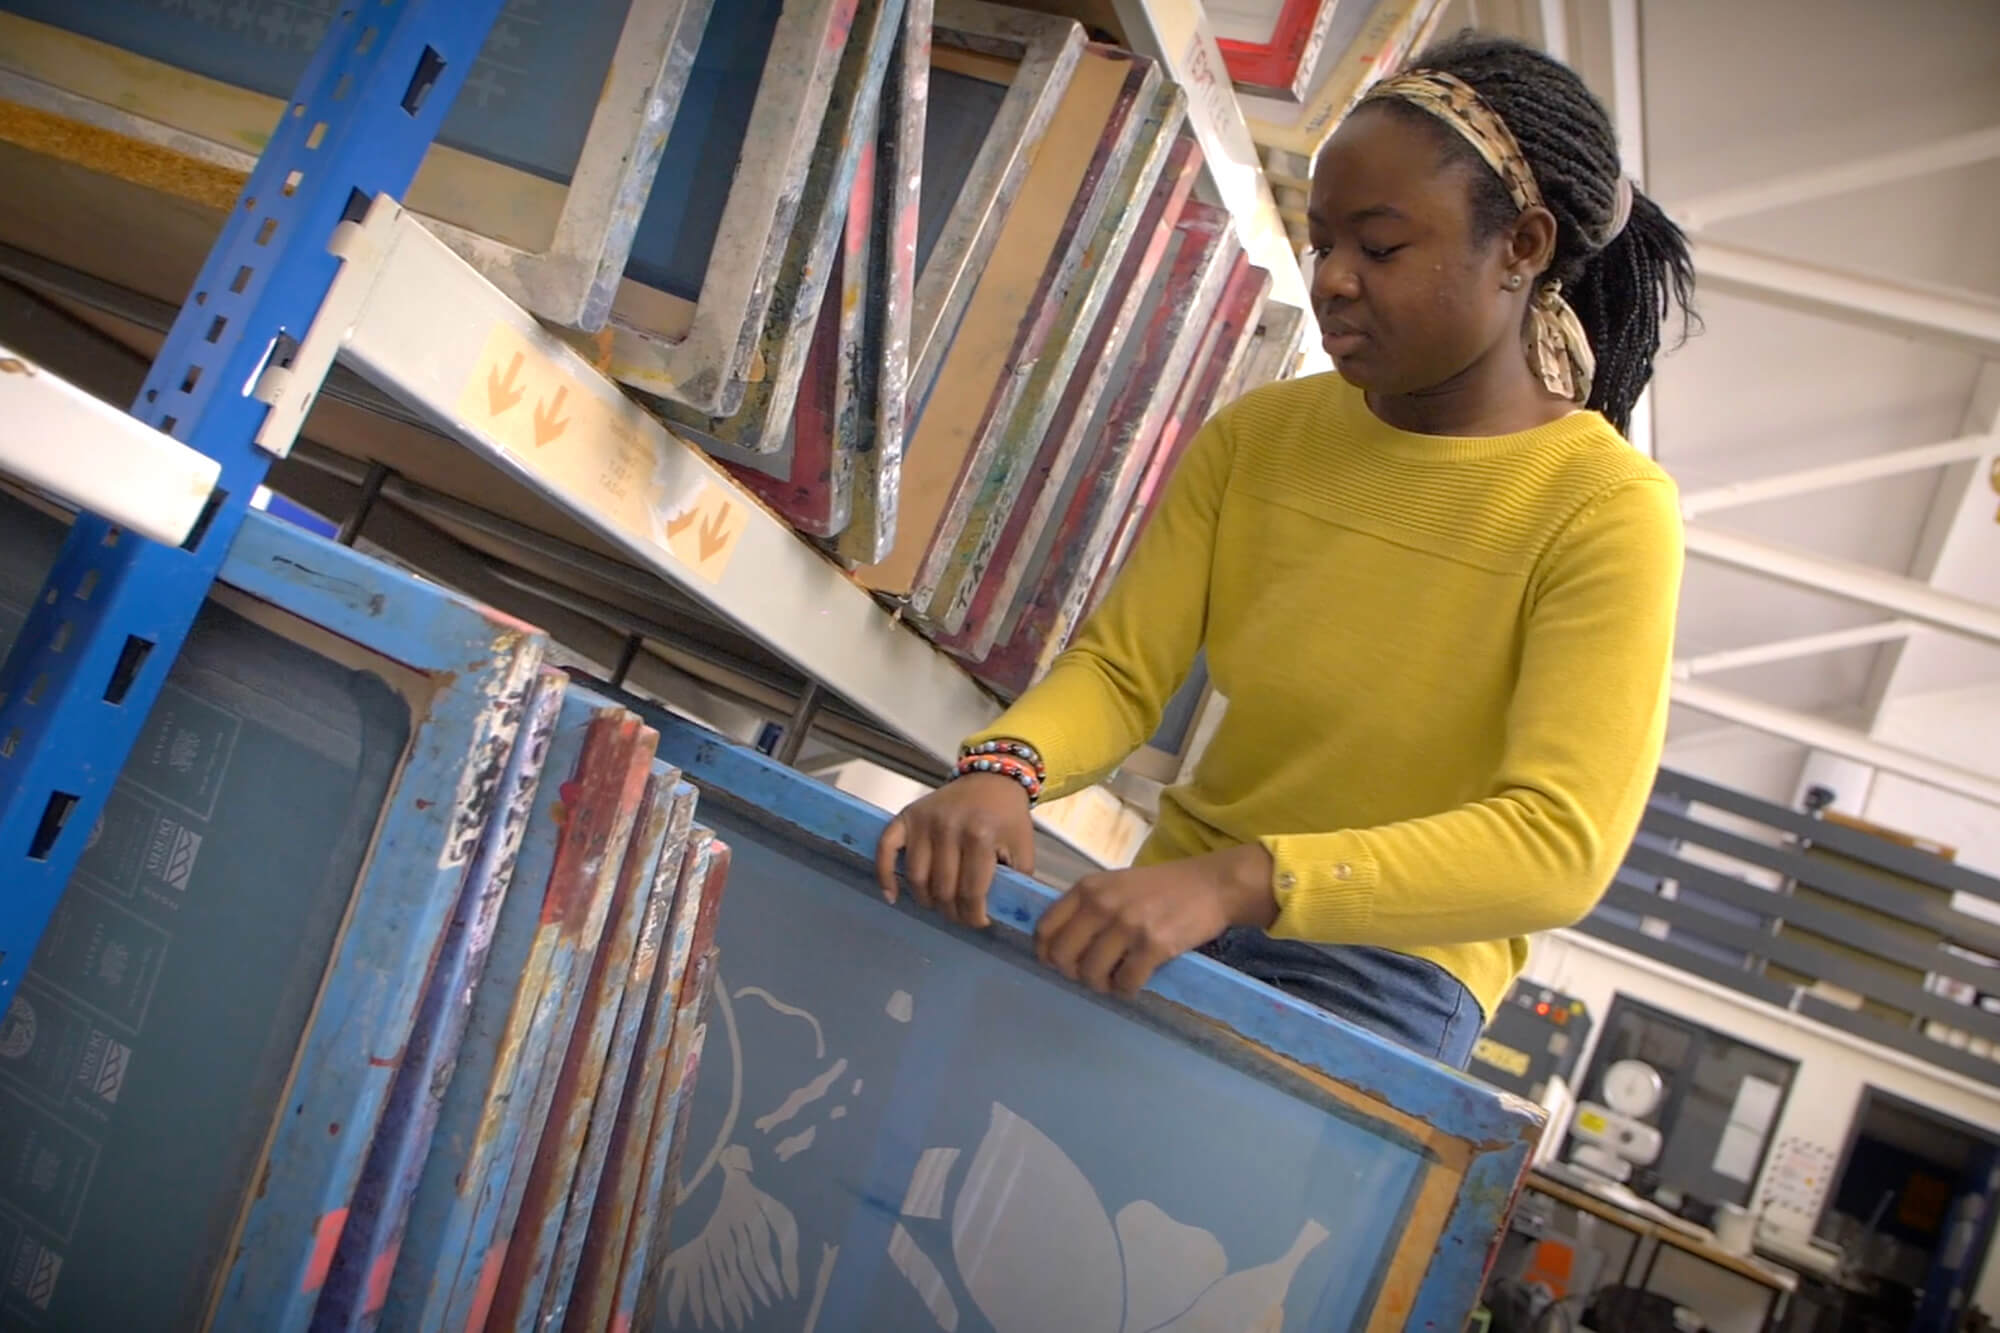 Jessica Boateng selecting screens for printing